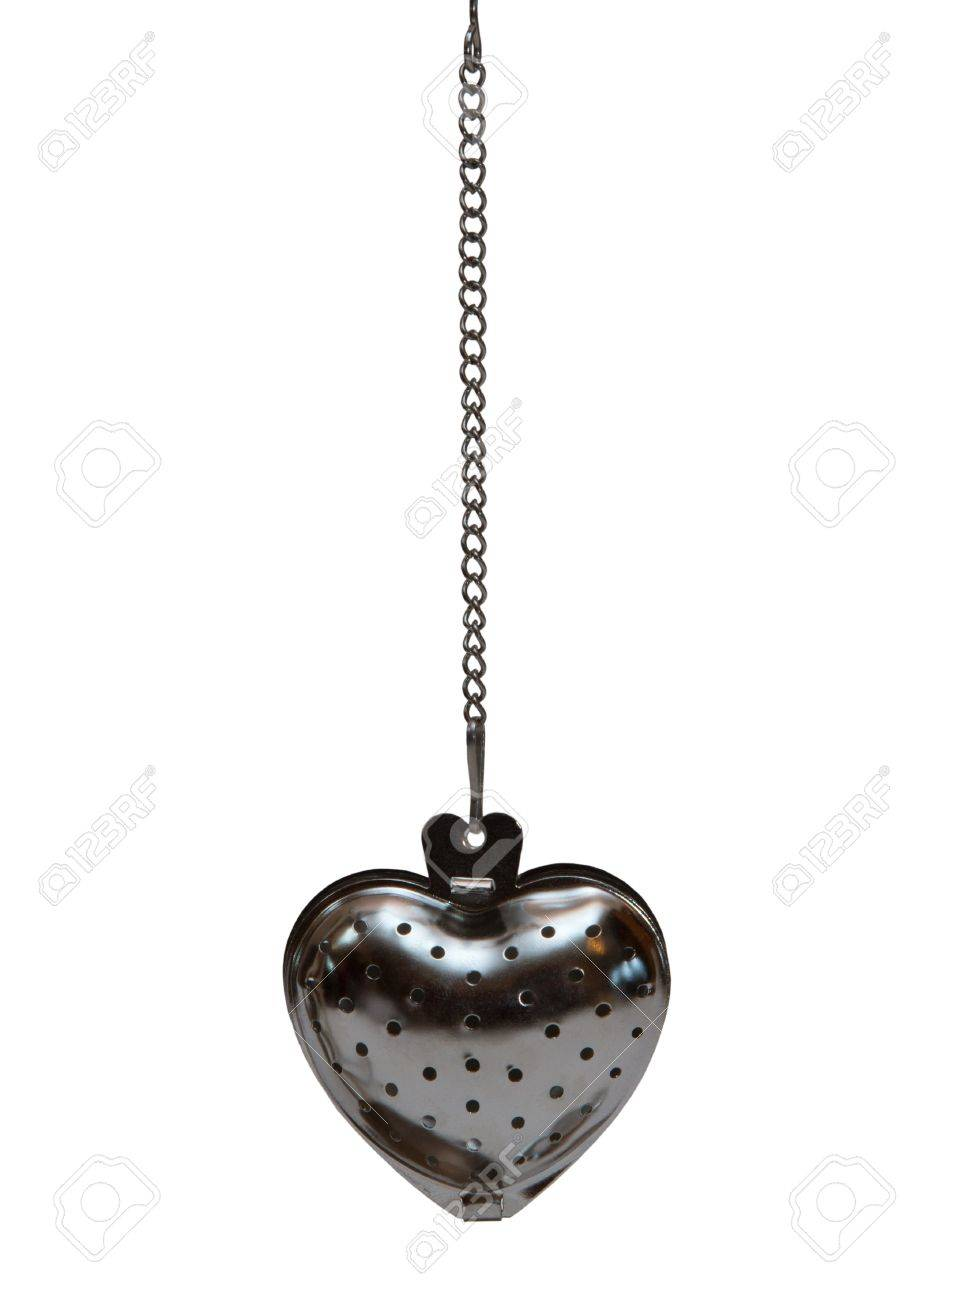 tea strainer in the shape of a heart on a chain Stock Photo - 17793441